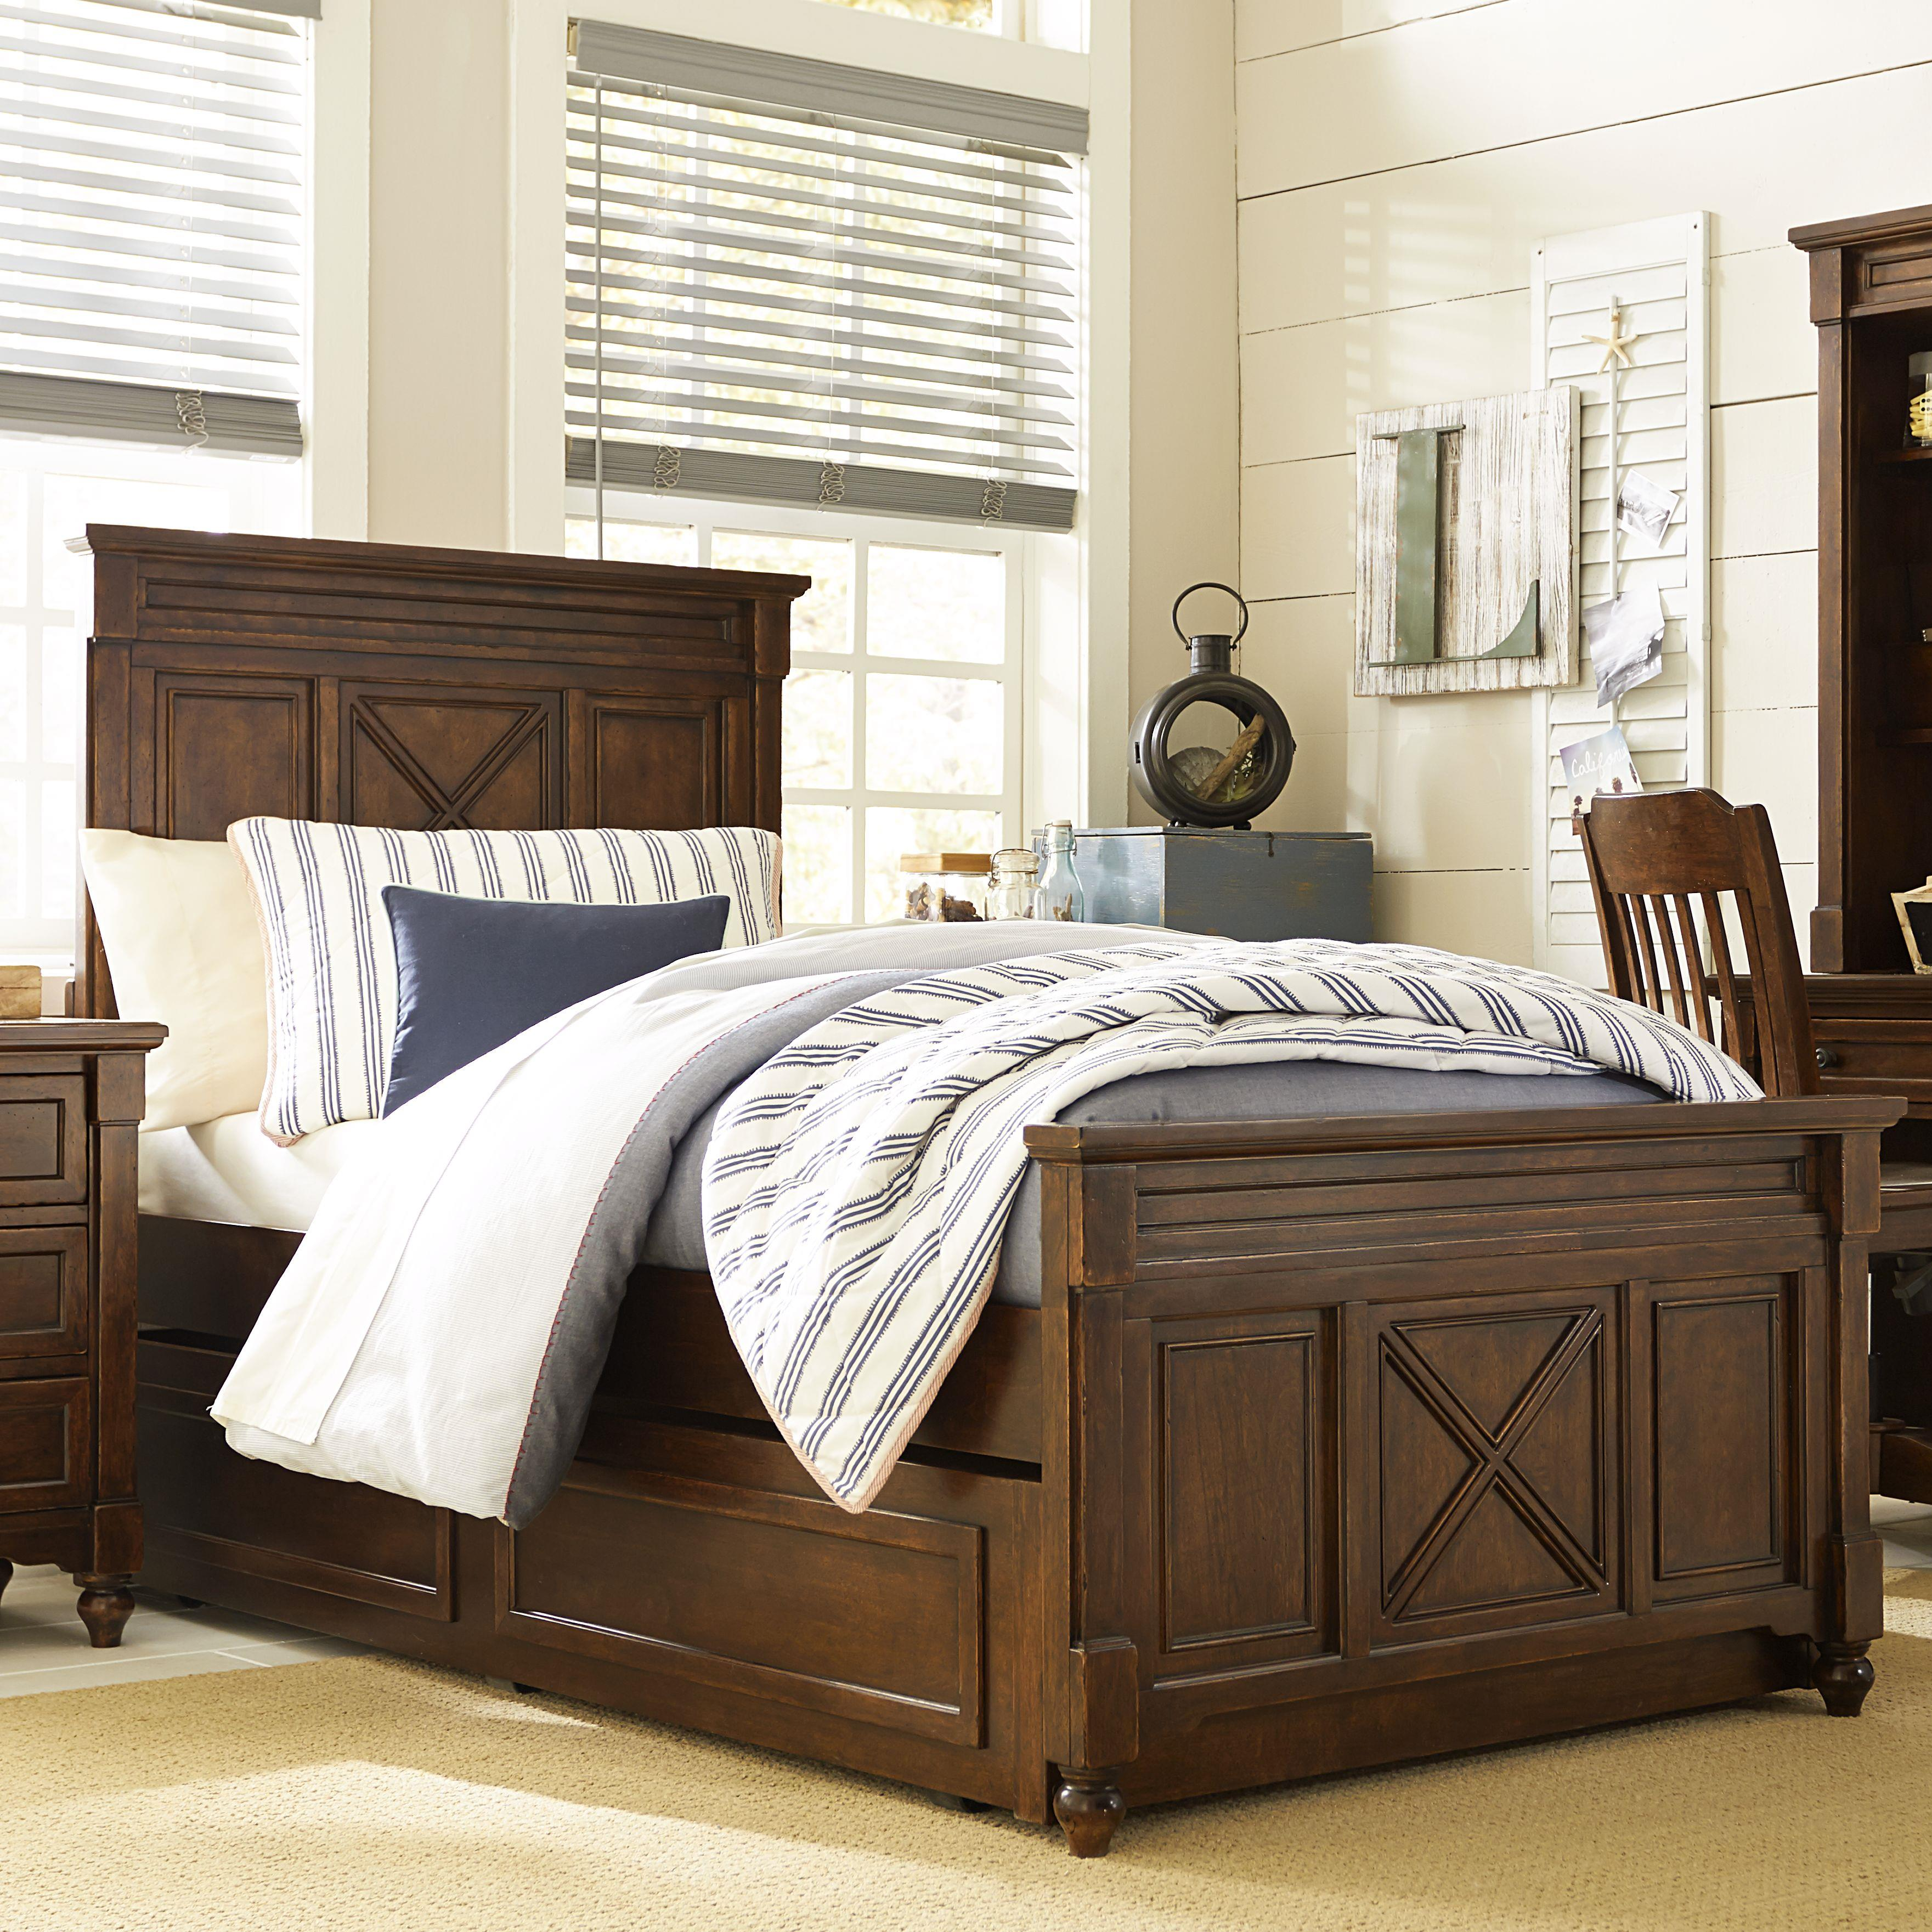 Legacy Classic Kids Big Sur by Wendy Bellissimo Twin Panel Bed with Trundle - Item Number: 4920-4103K+9500